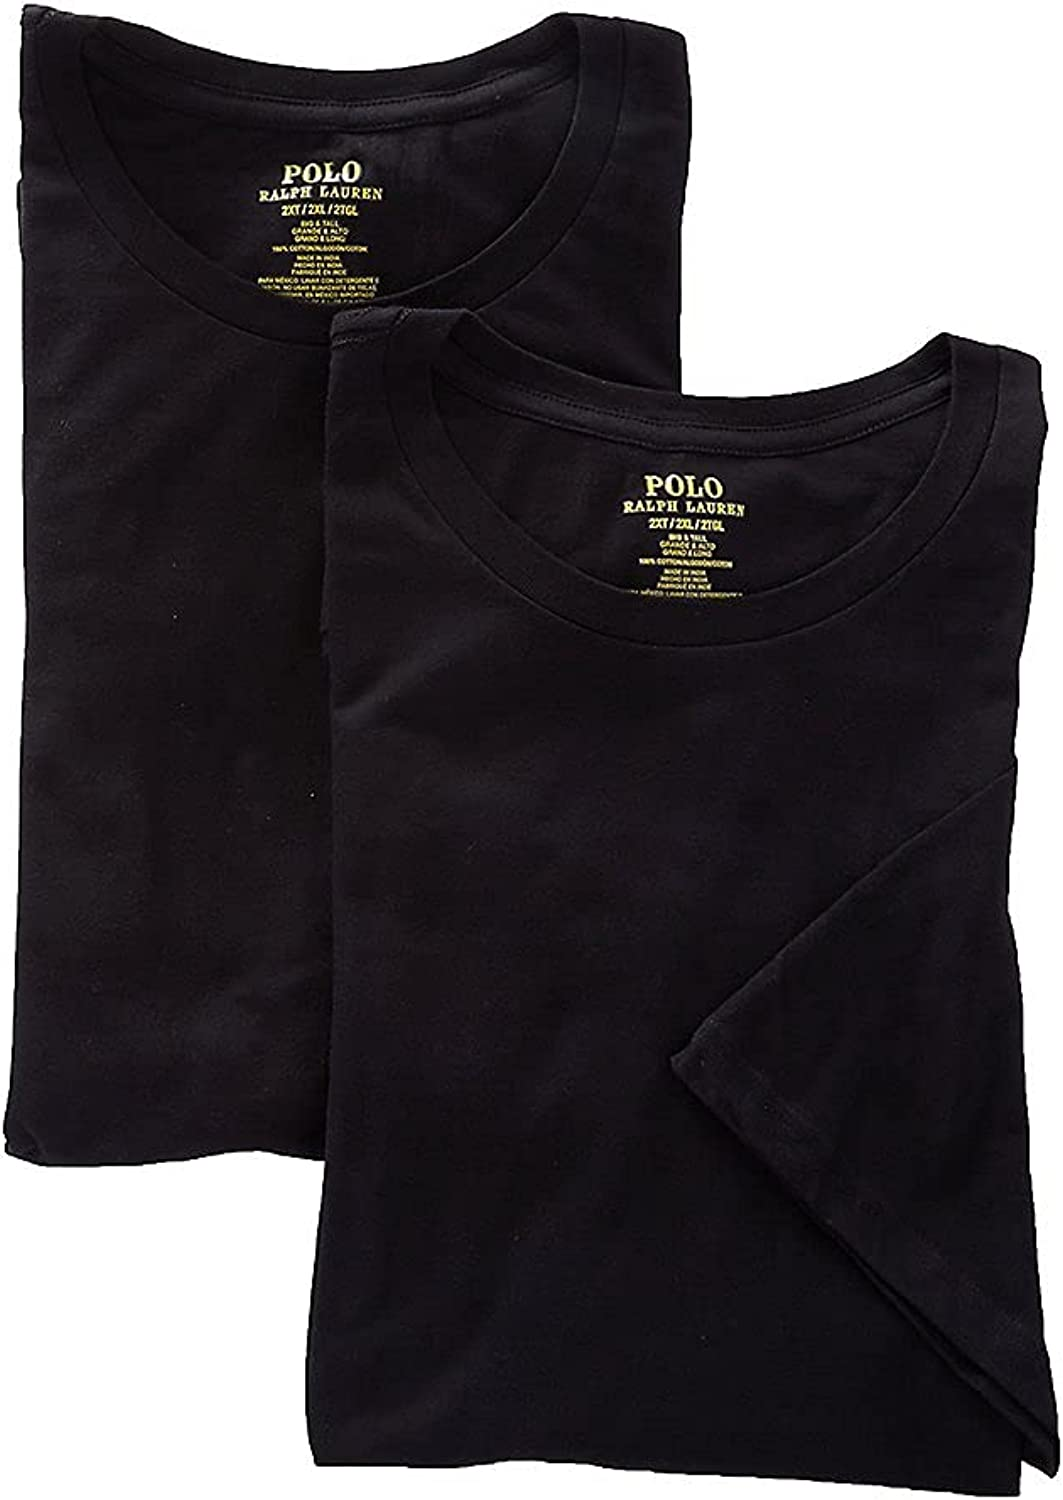 Classic Fit Tall Crew Neck T-Shirt 2-Pack Black